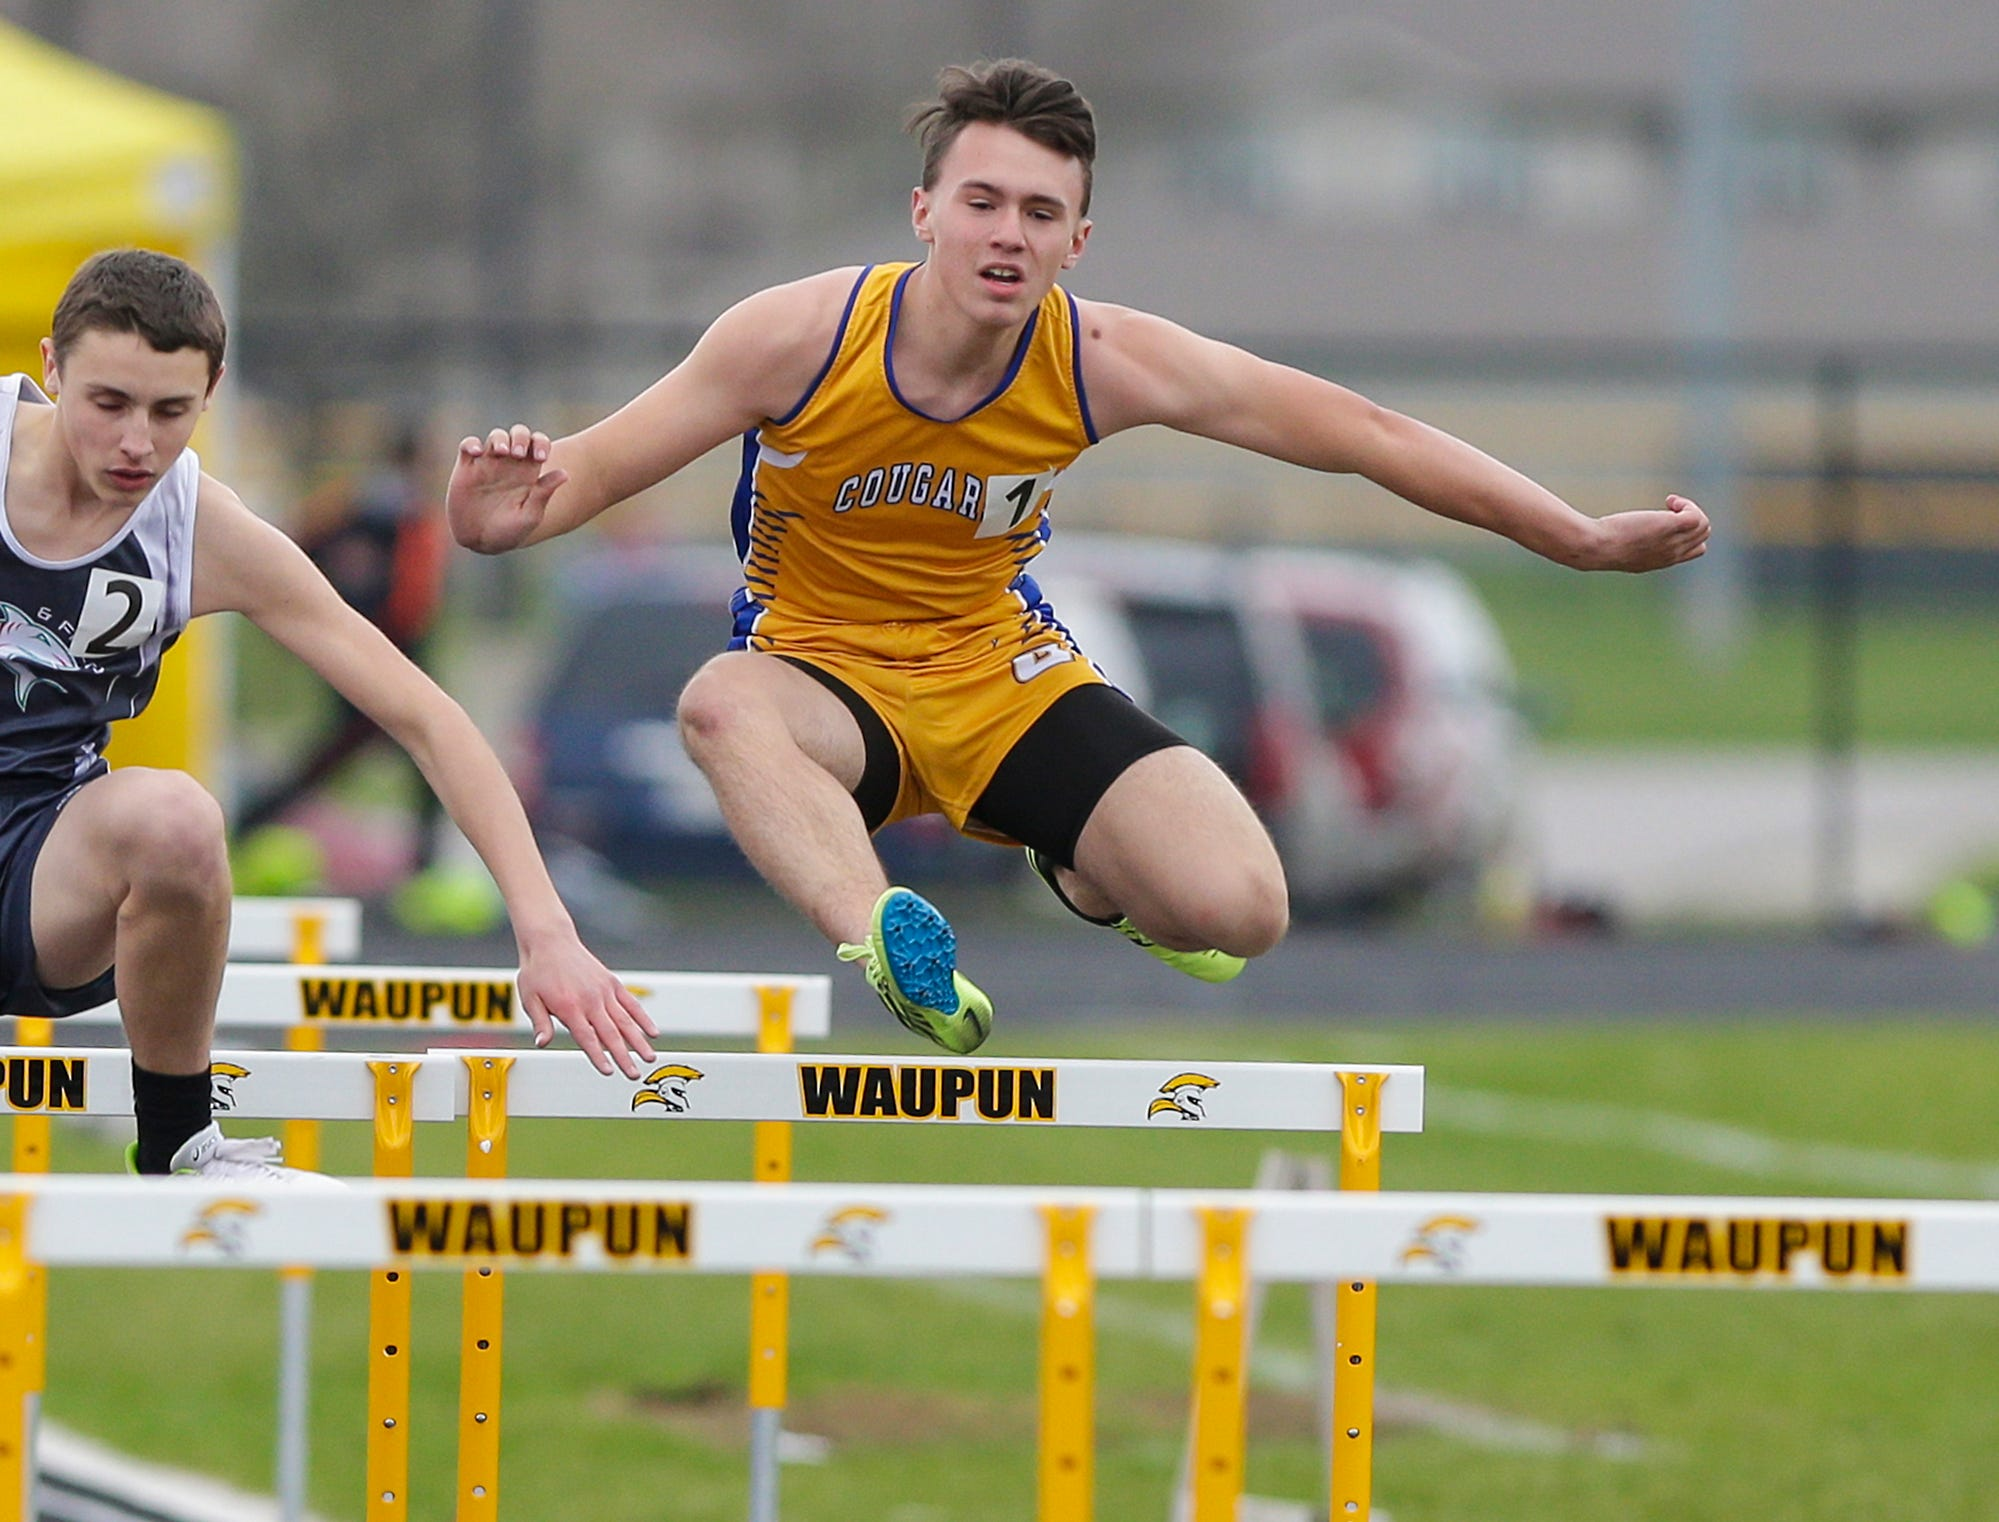 Connor Lemke of Campbellsport High School competes in the 110 meter hurdles Friday, May 3, 2019 at the Waupun High School Invitational track and field meet. Doug Raflik/USA TODAY NETWORK-Wisconsin